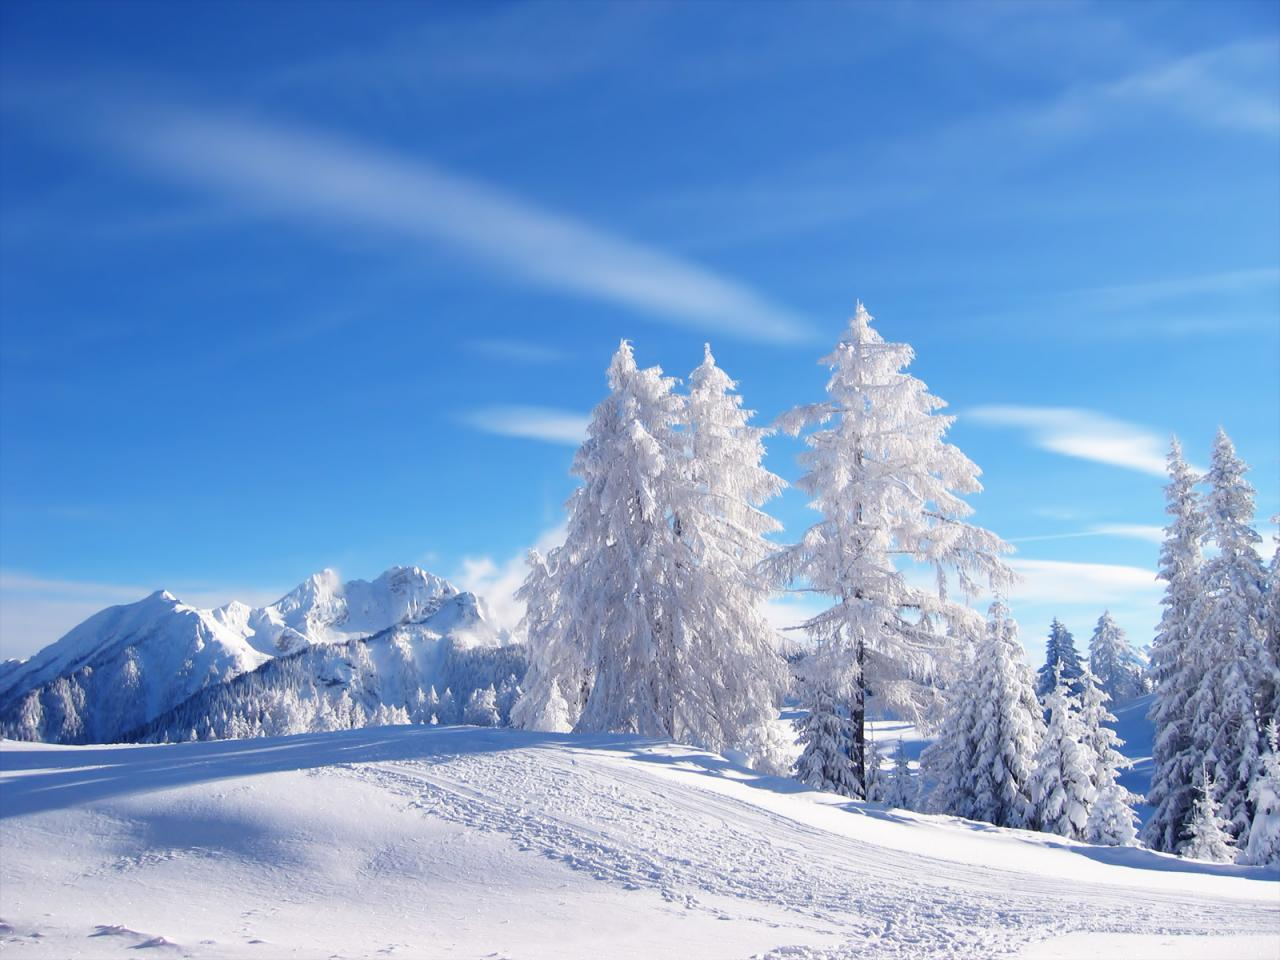 Snow Trees Wallpaper Backgrounds 1 HD Wallpapers